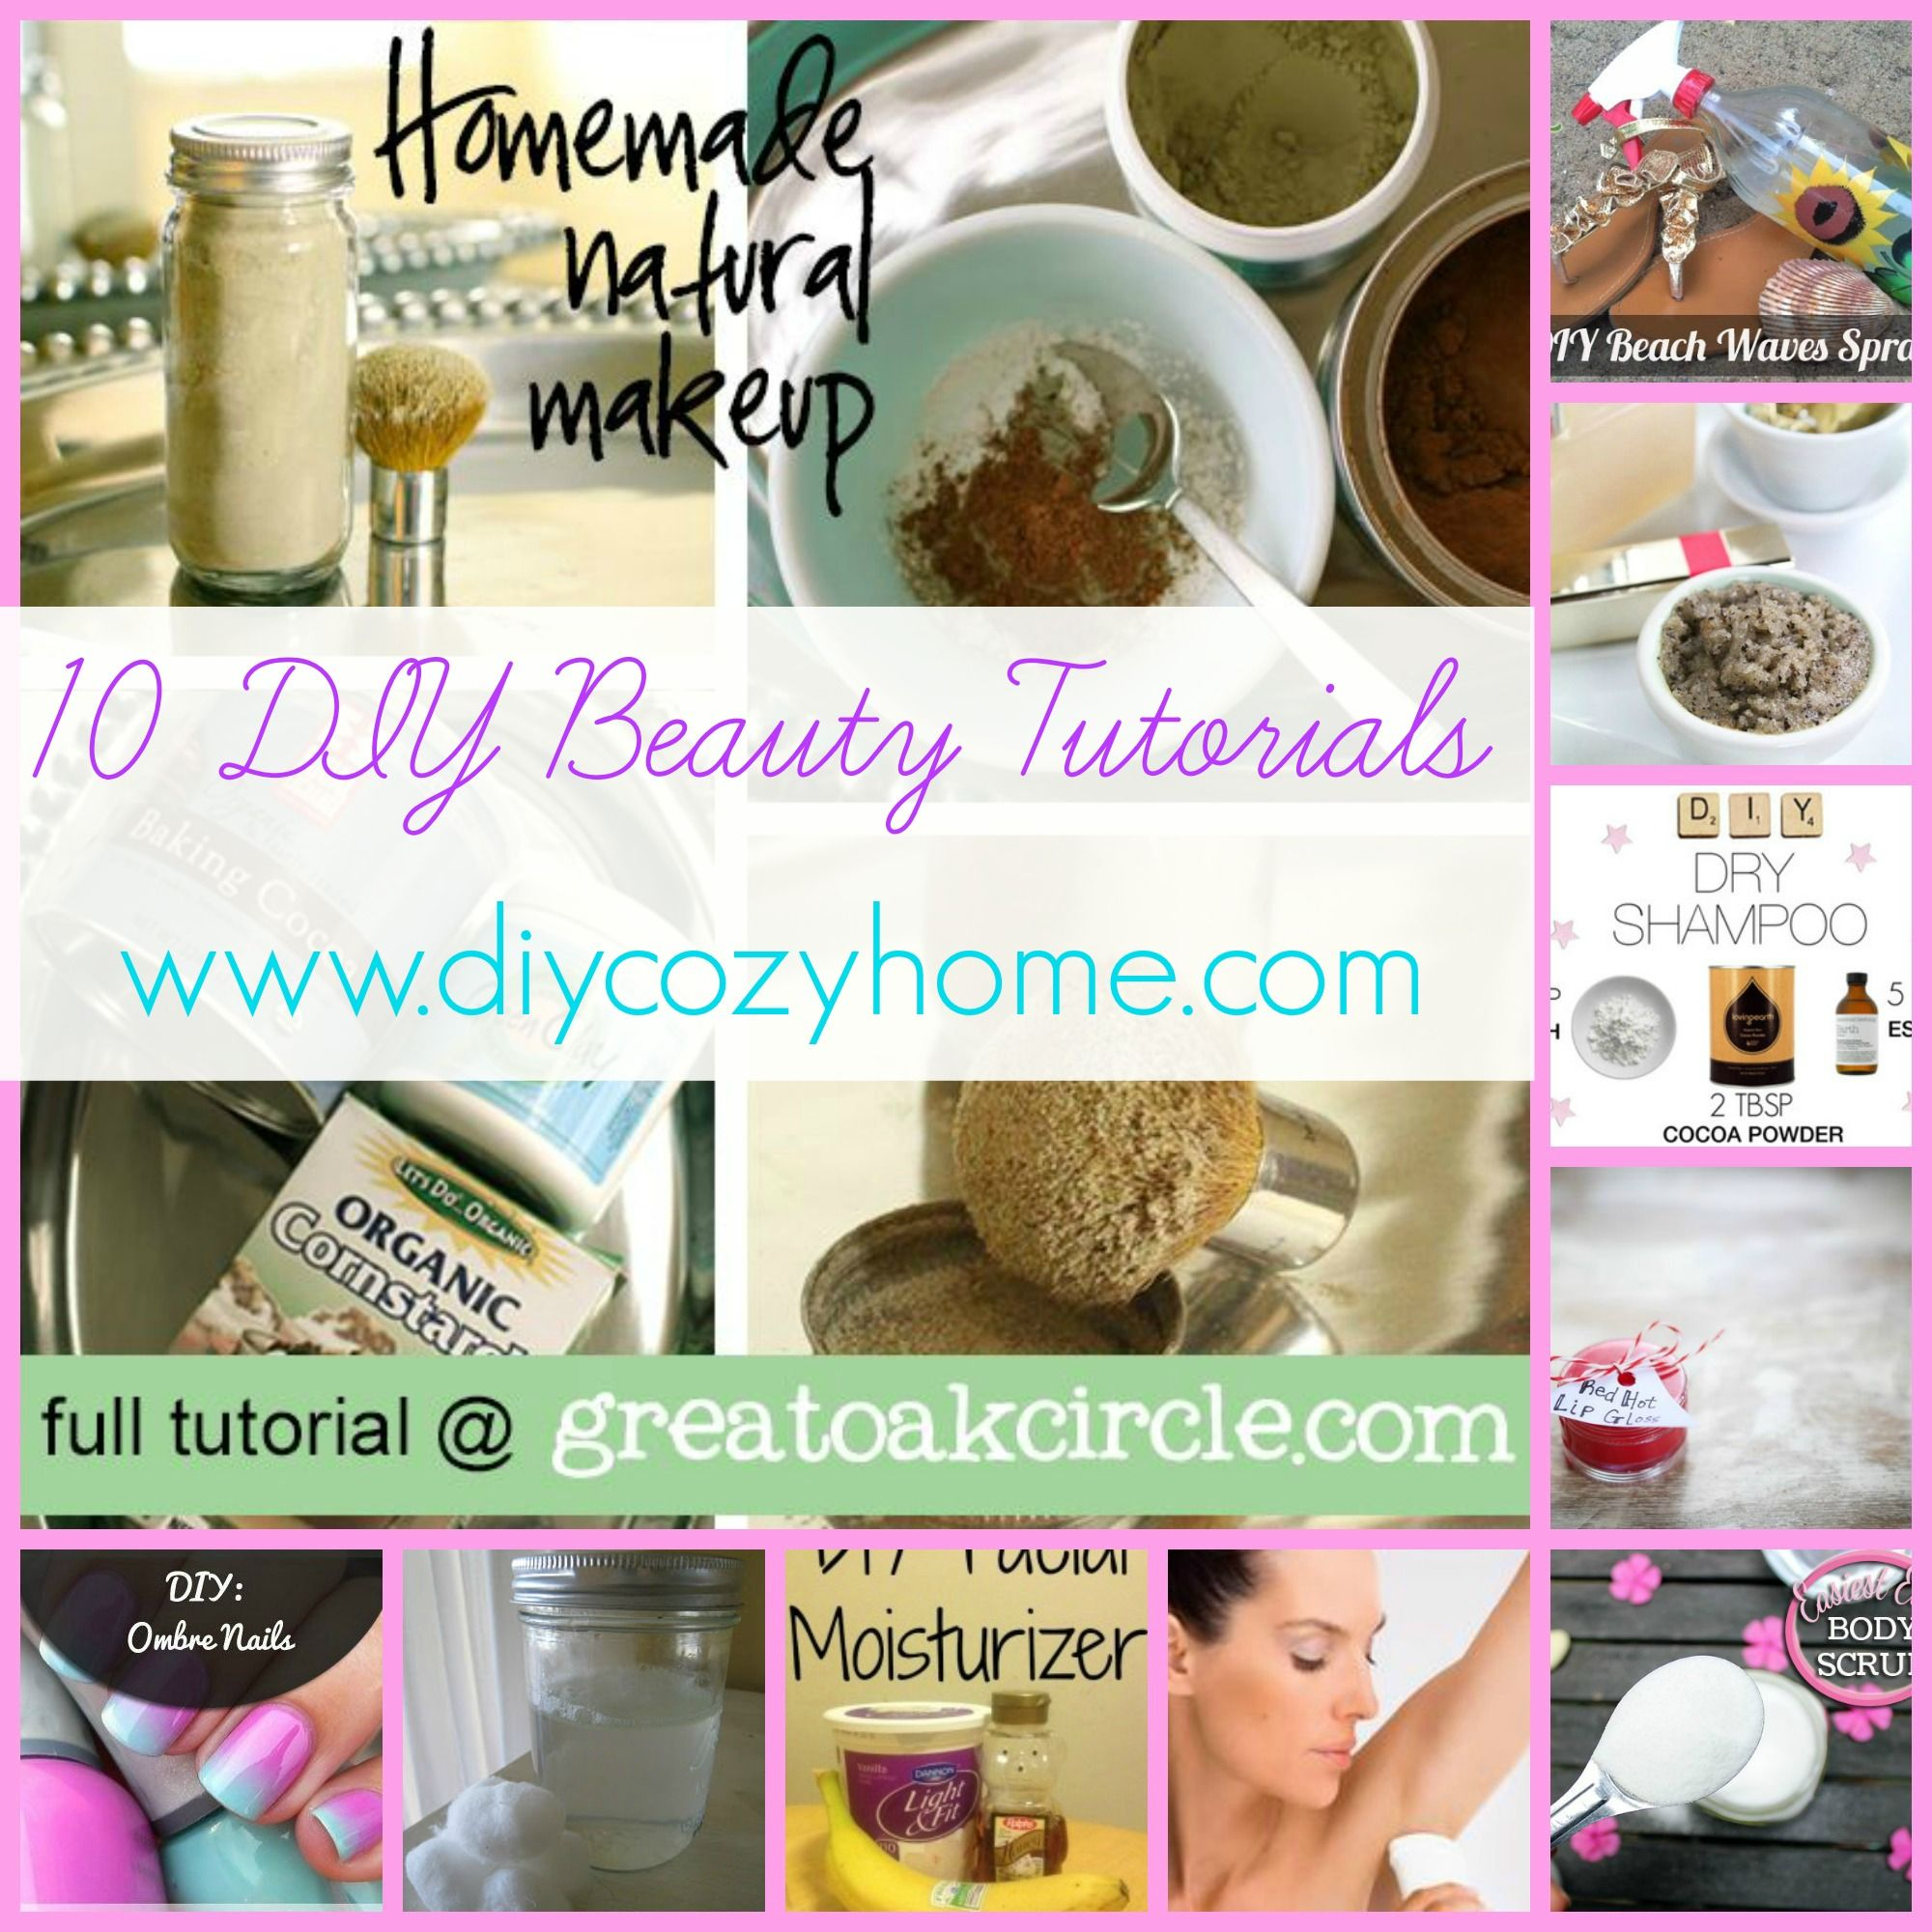 10 DIY Beauty Tutorials is part of Diy beauty tutorials, Beauty tutorials, Homemade beauty products, Diy beauty hacks, Homemade beauty, Diy beauty - Don't miss out! Follow DIYcozyHome com on Facebook and bring more love and life into your home  Beauty care products can be SO expensive  So, today I am sharing with you 10 DIY beauty tutorials  From make up, to Facials, shampoo  A little of everything  I hope you enjoy! 1  DIY Dry Shampoo 2  DIY Eye Makeup remover 3  All Natural Makeup 4  DIY Ombre Nails 5  DIY Deodorant 6  DIY Facial Moisturizer 7  DIY Lip Gloss 8  Easiest ever Body Scrub 9  DIY Beach Waves Spray 10  DIY Cinnamon